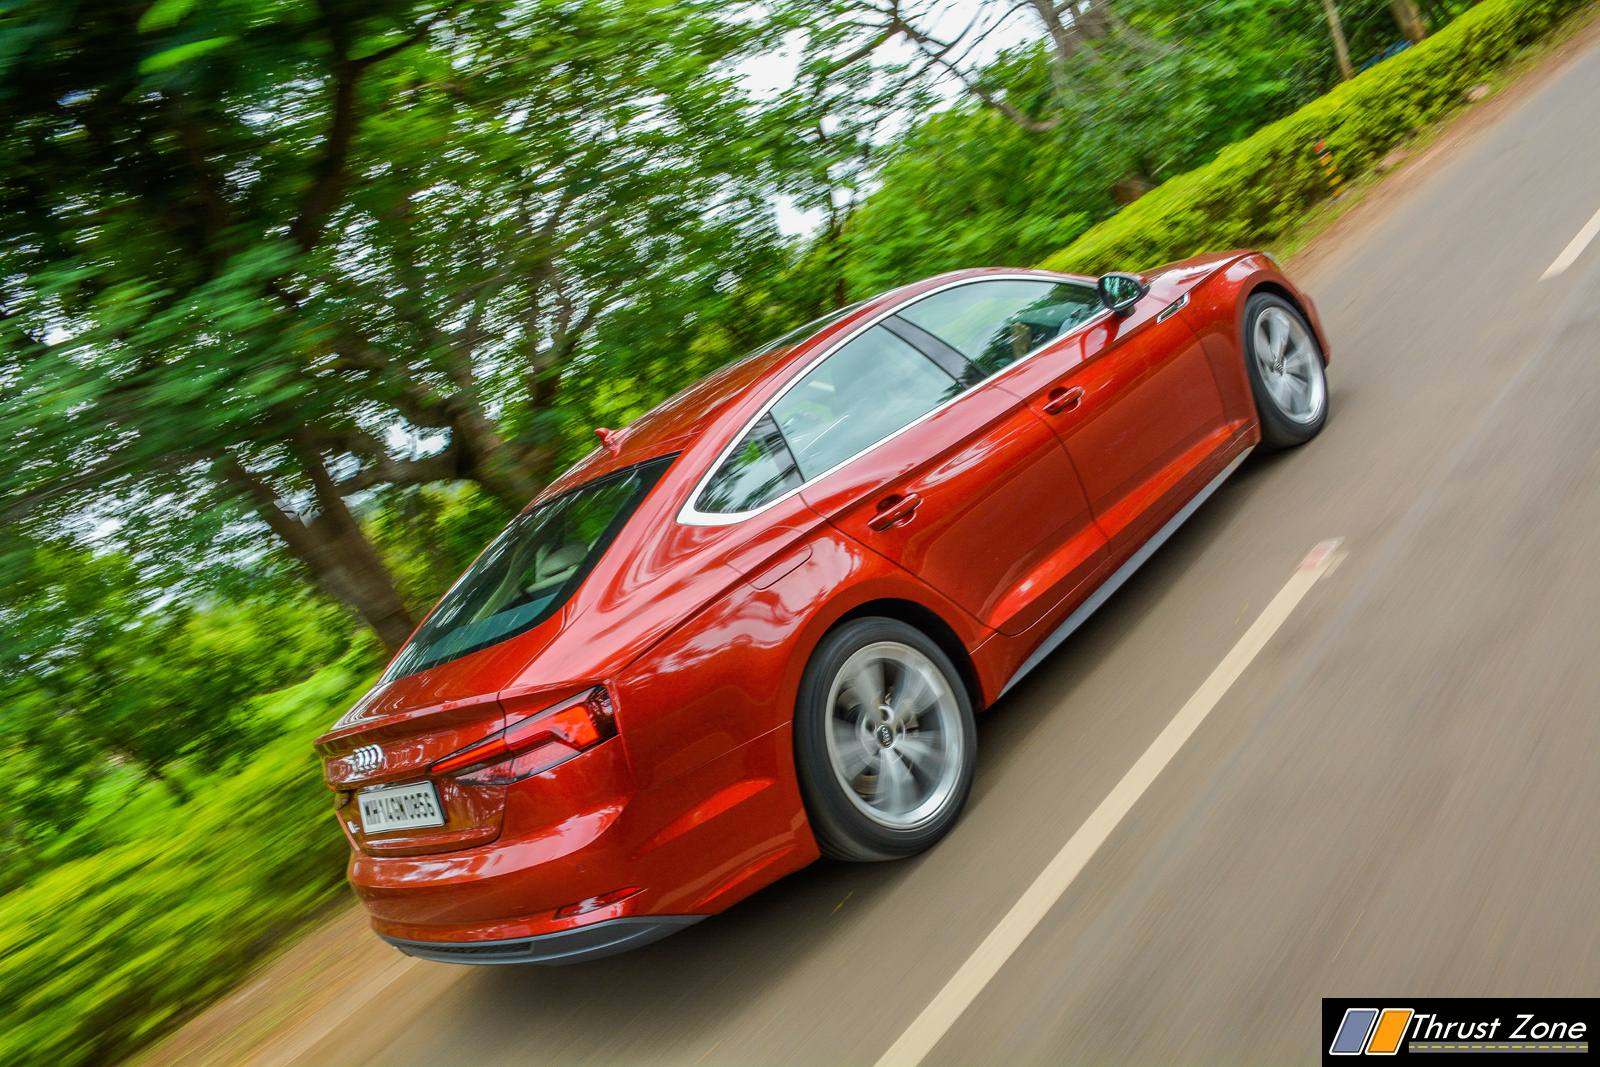 https://www.thrustzone.com/wp-content/uploads/2018/08/2018-Audi-A5-Diesel-India-Review-35.jpg